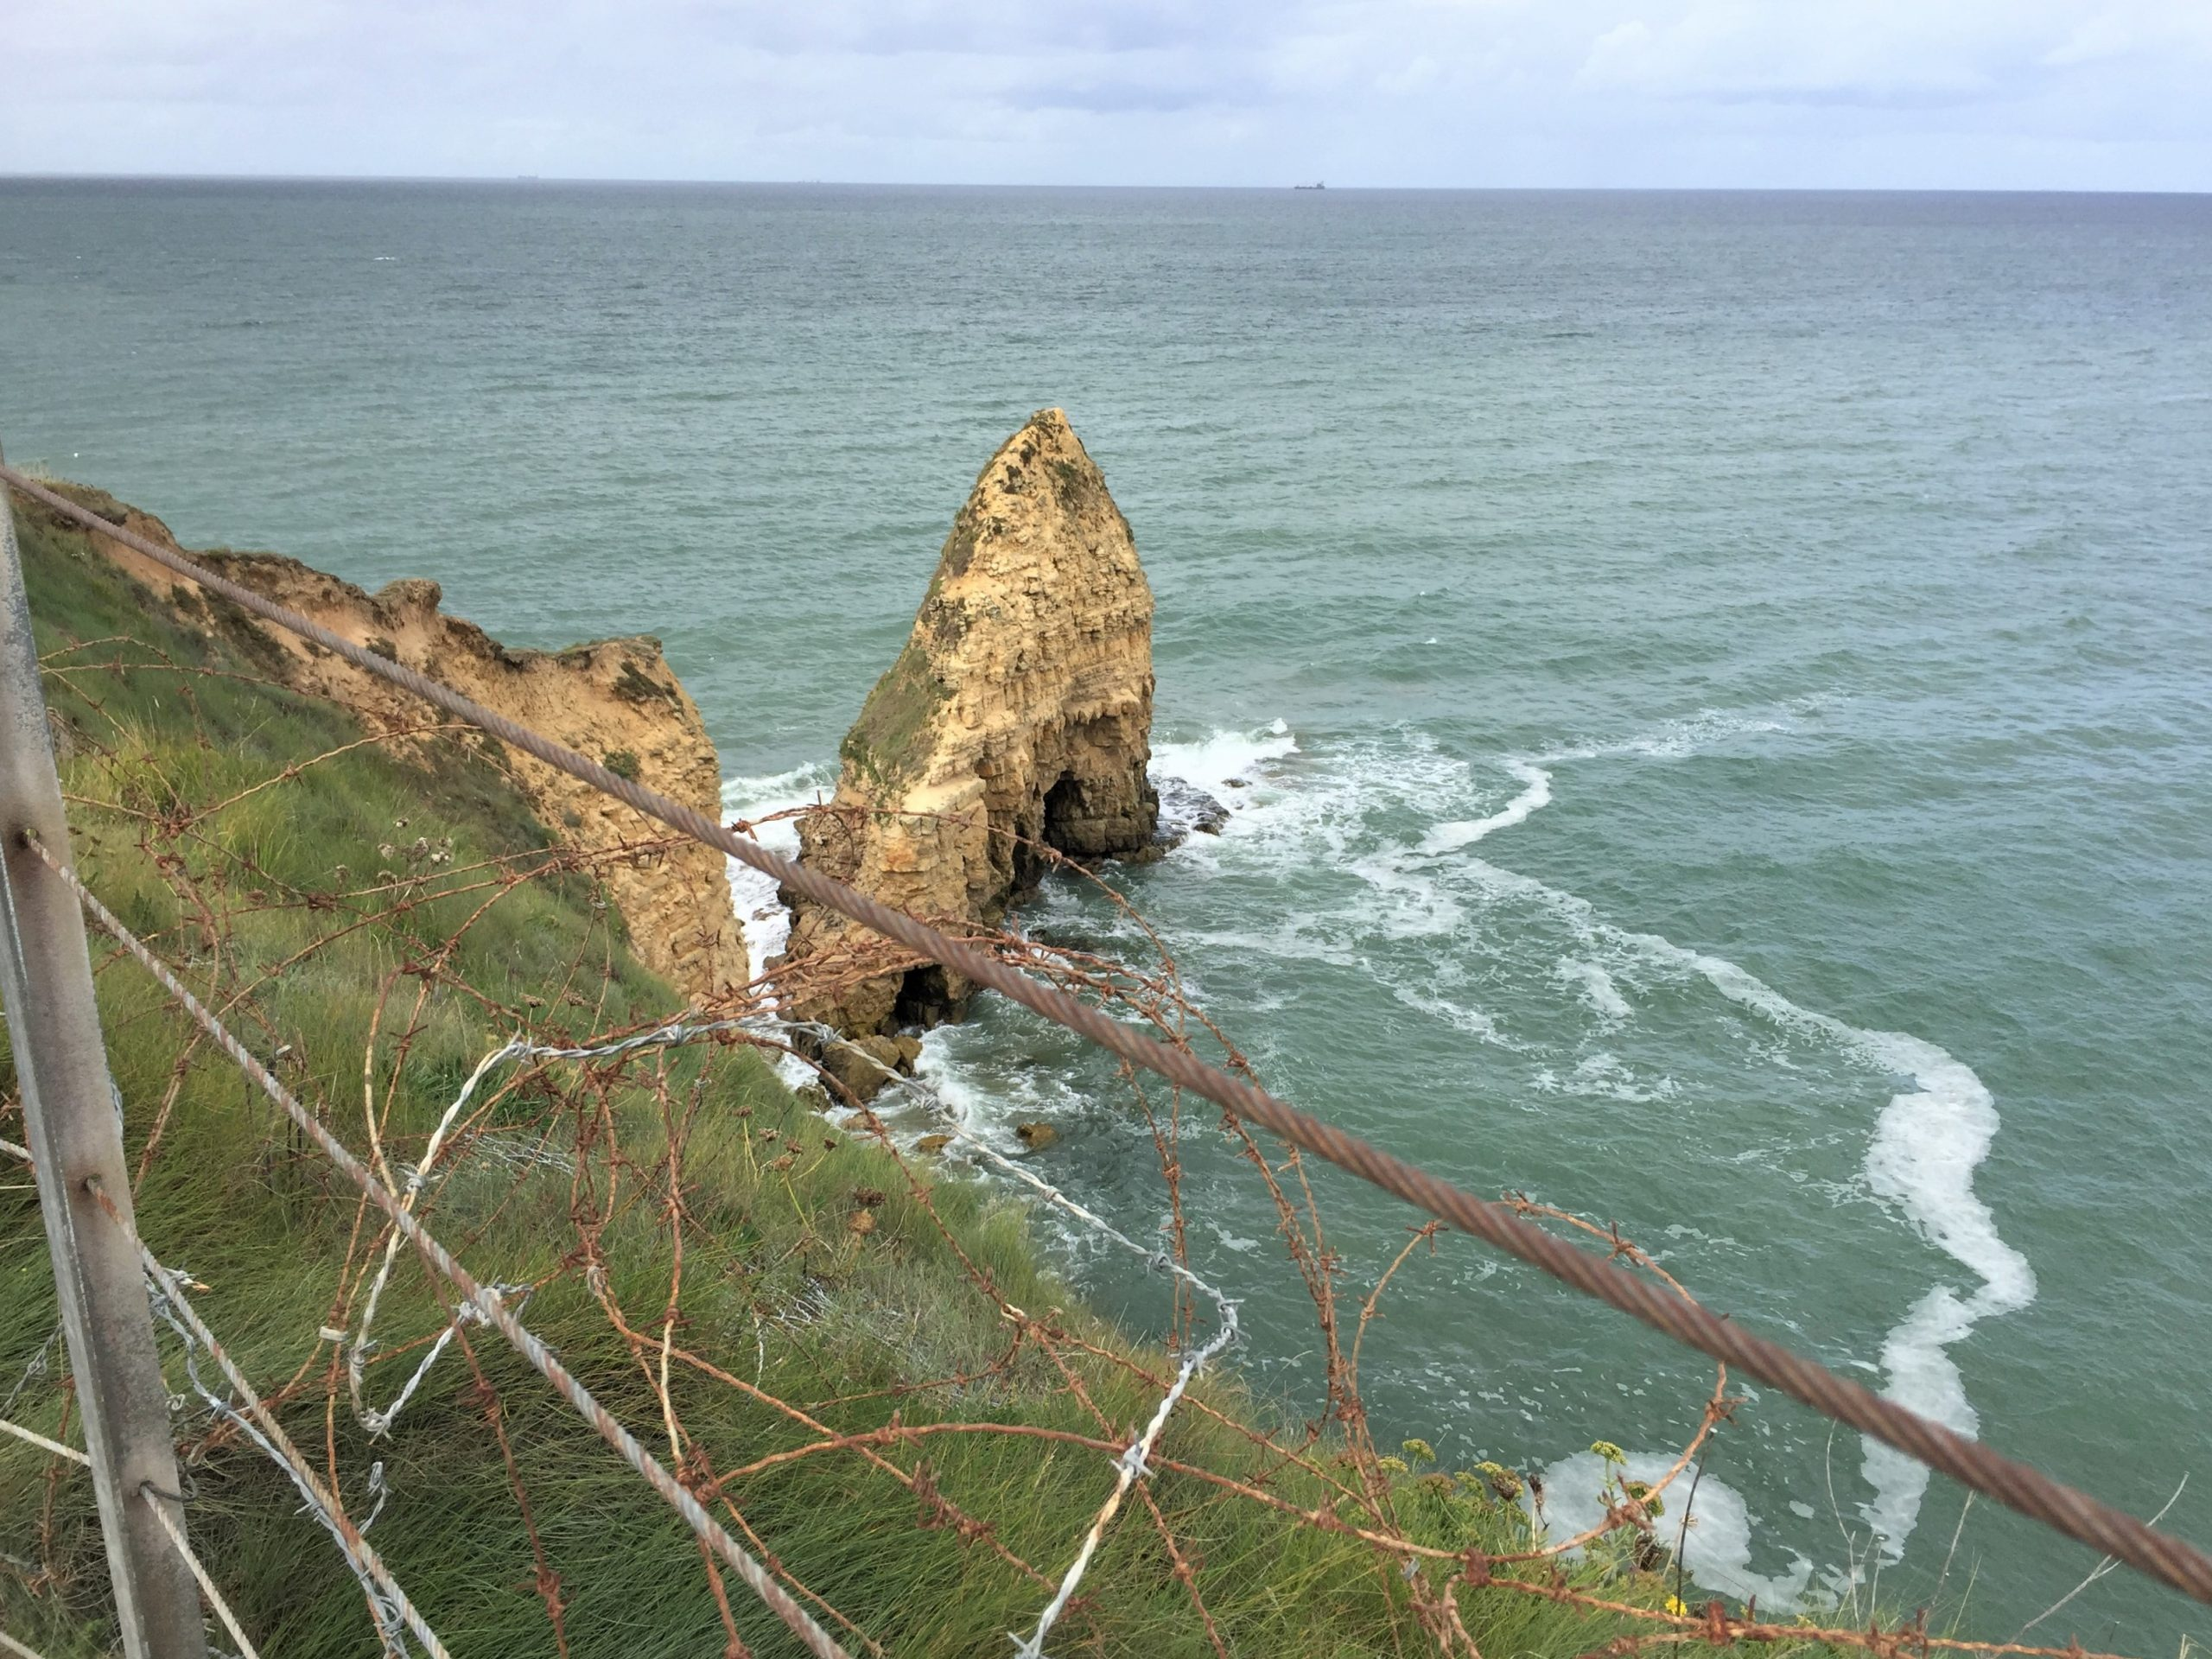 Tip of Pointe du Hoc (Photo: Sarah Sundin, September 2017)